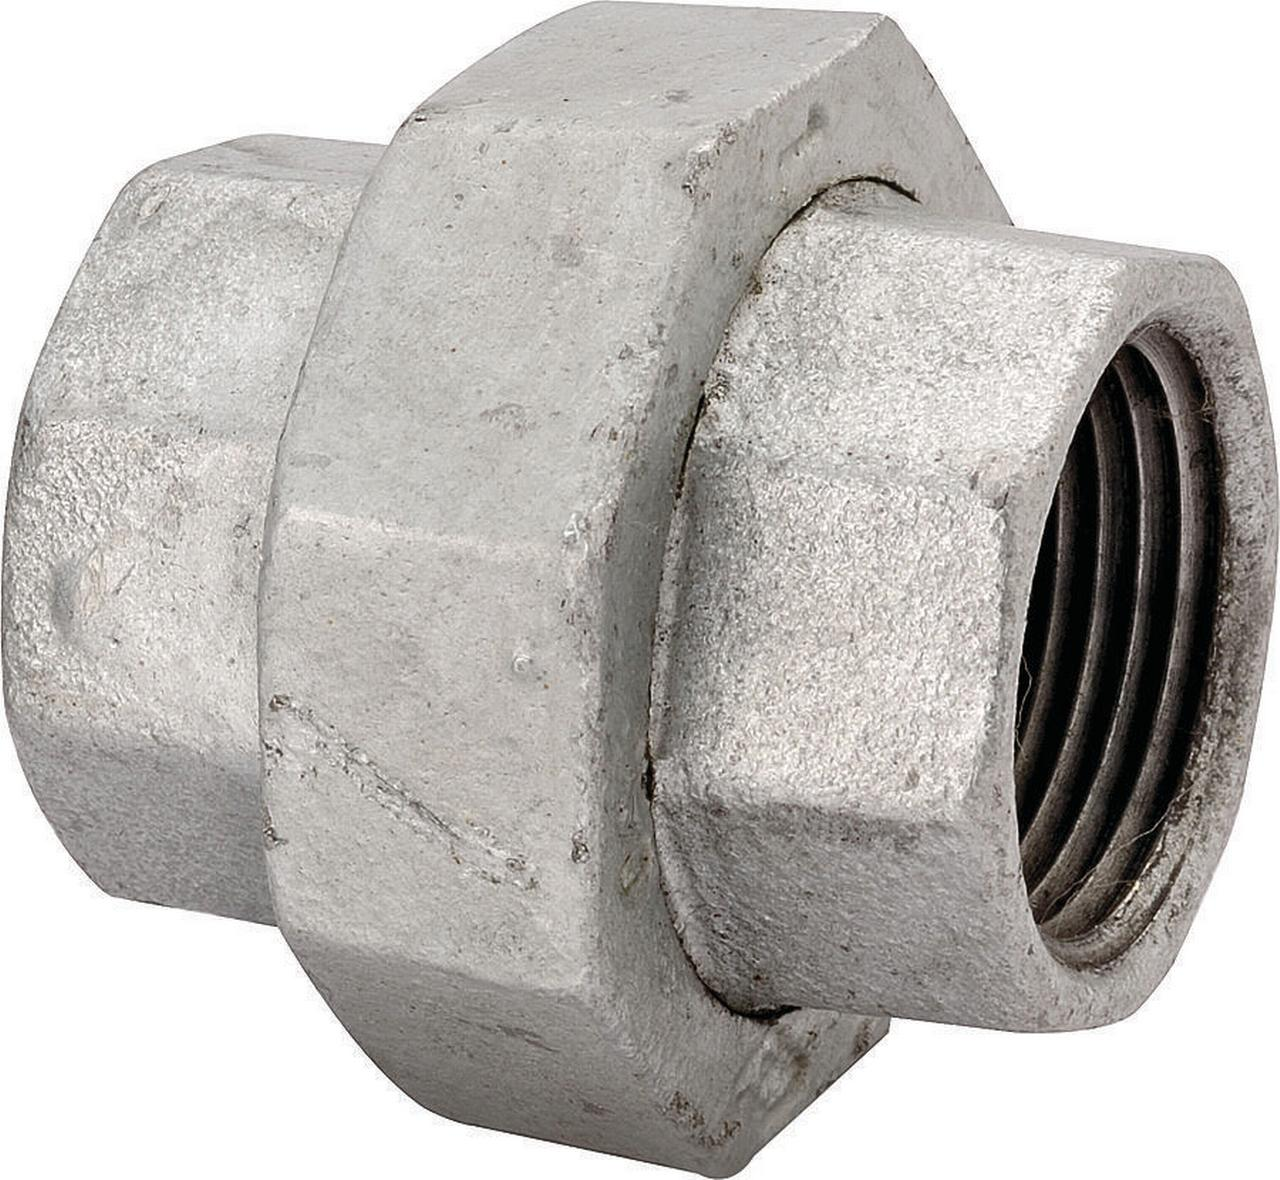 WORLDWIDE SOURCING 34B-1-1/4G Ground Joint Pipe Union, 1-1/4 in, Threaded, 150 psi, Malleable Iron,